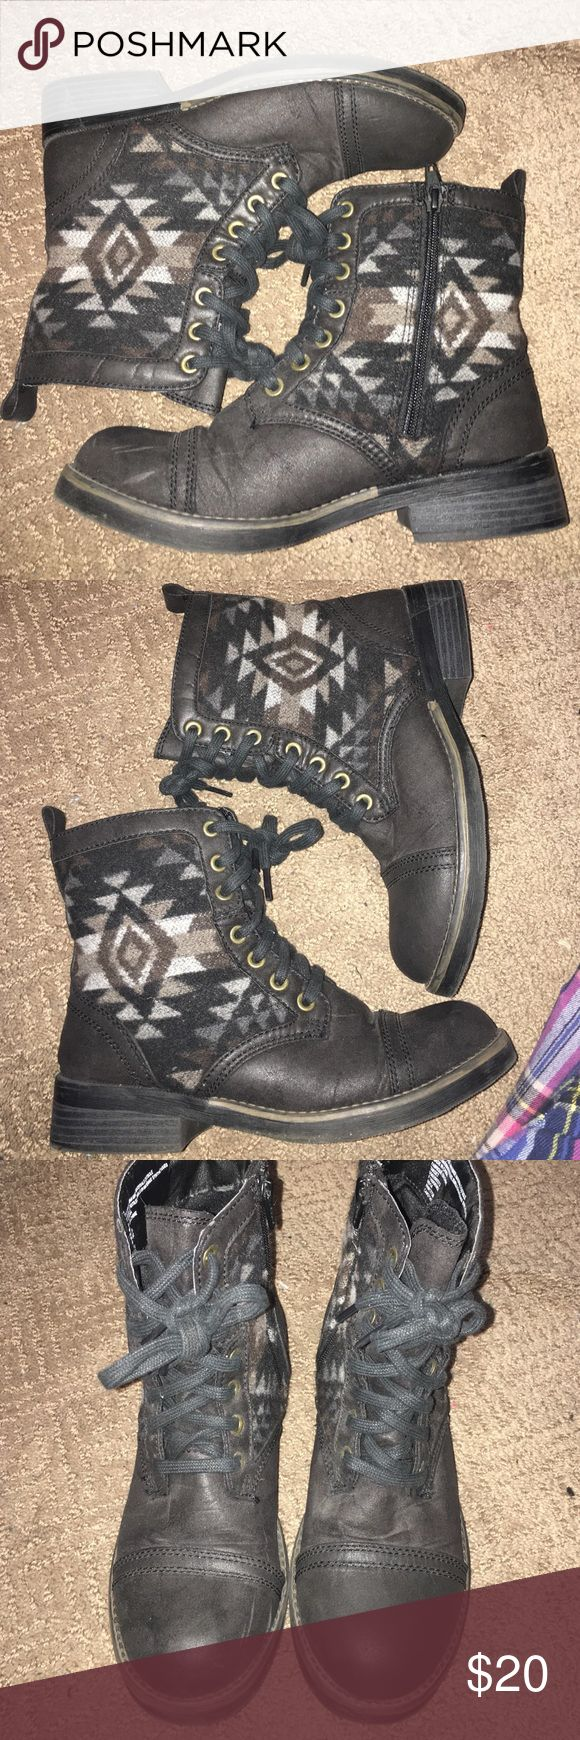 Combat Aztec boots Got these for xmas last year and I honestly don't ever remember wearing them. Maybe once. But the bottoms look like I never left the house 😂 they are from target. Comfy. Mid ankle boot style. Working inner zippers. Lace up as well. Size 7. Distress worn look to them. Colors in the Aztec are black/brown/gray. Actual boot is black. Shoes Ankle Boots & Booties